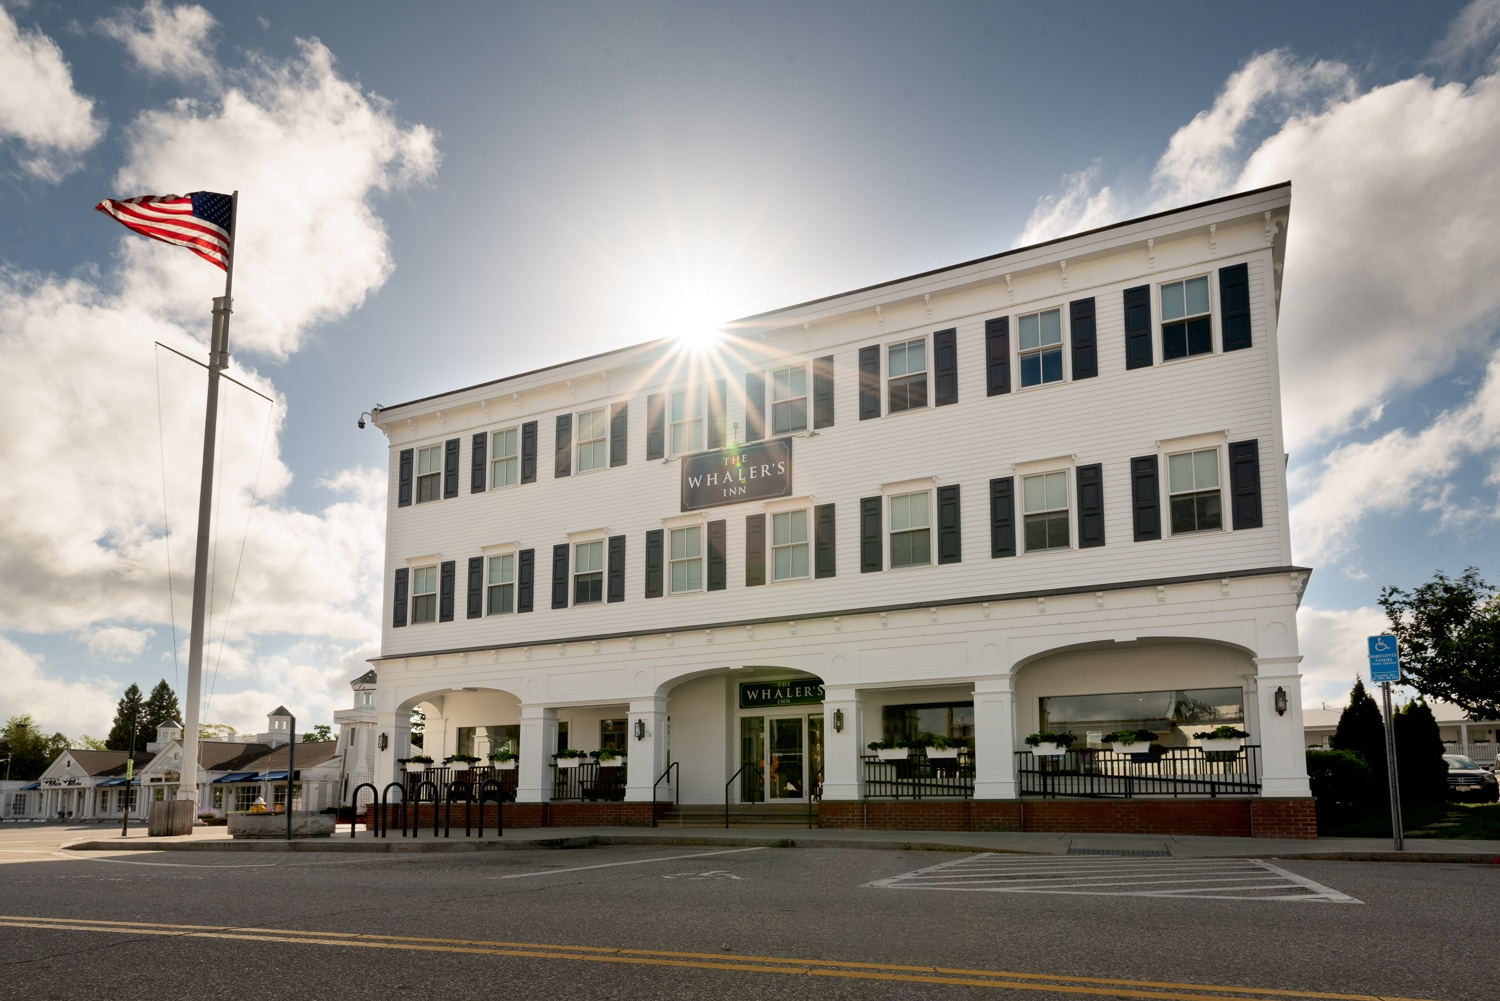 The Whaler's Inn building featured in Yolo Journal